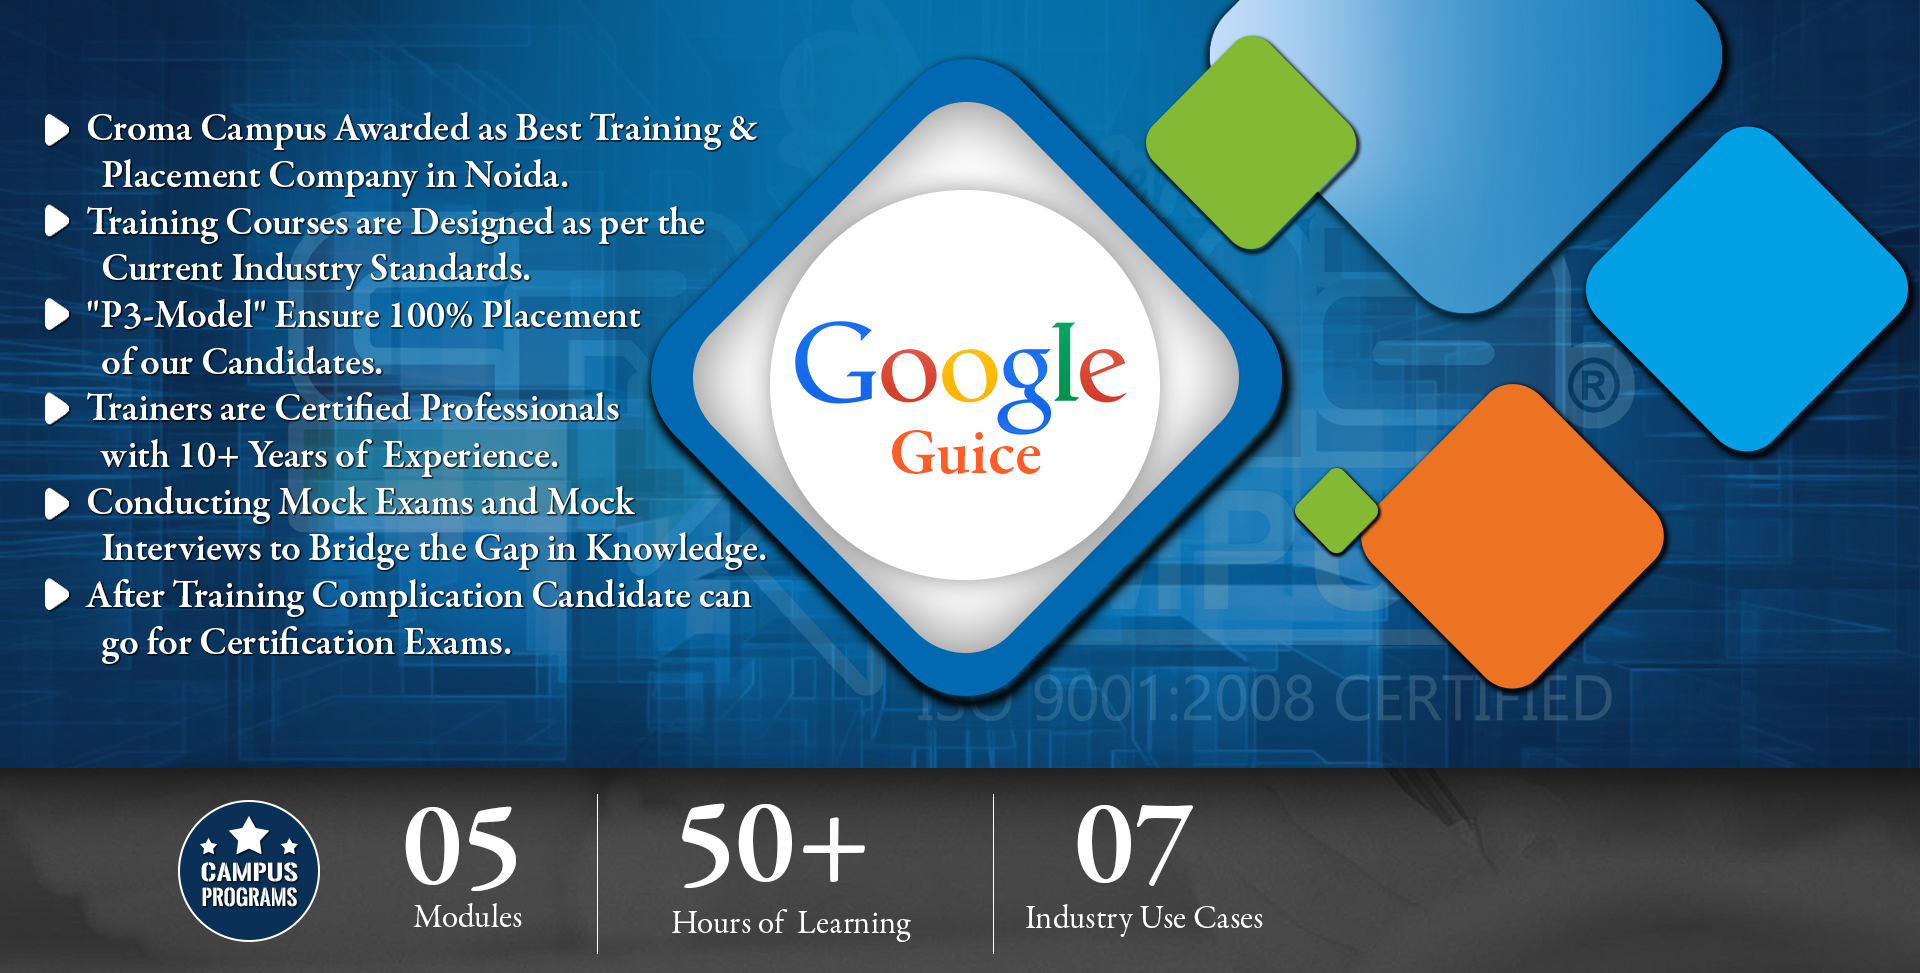 Google Guice Training in Delhi